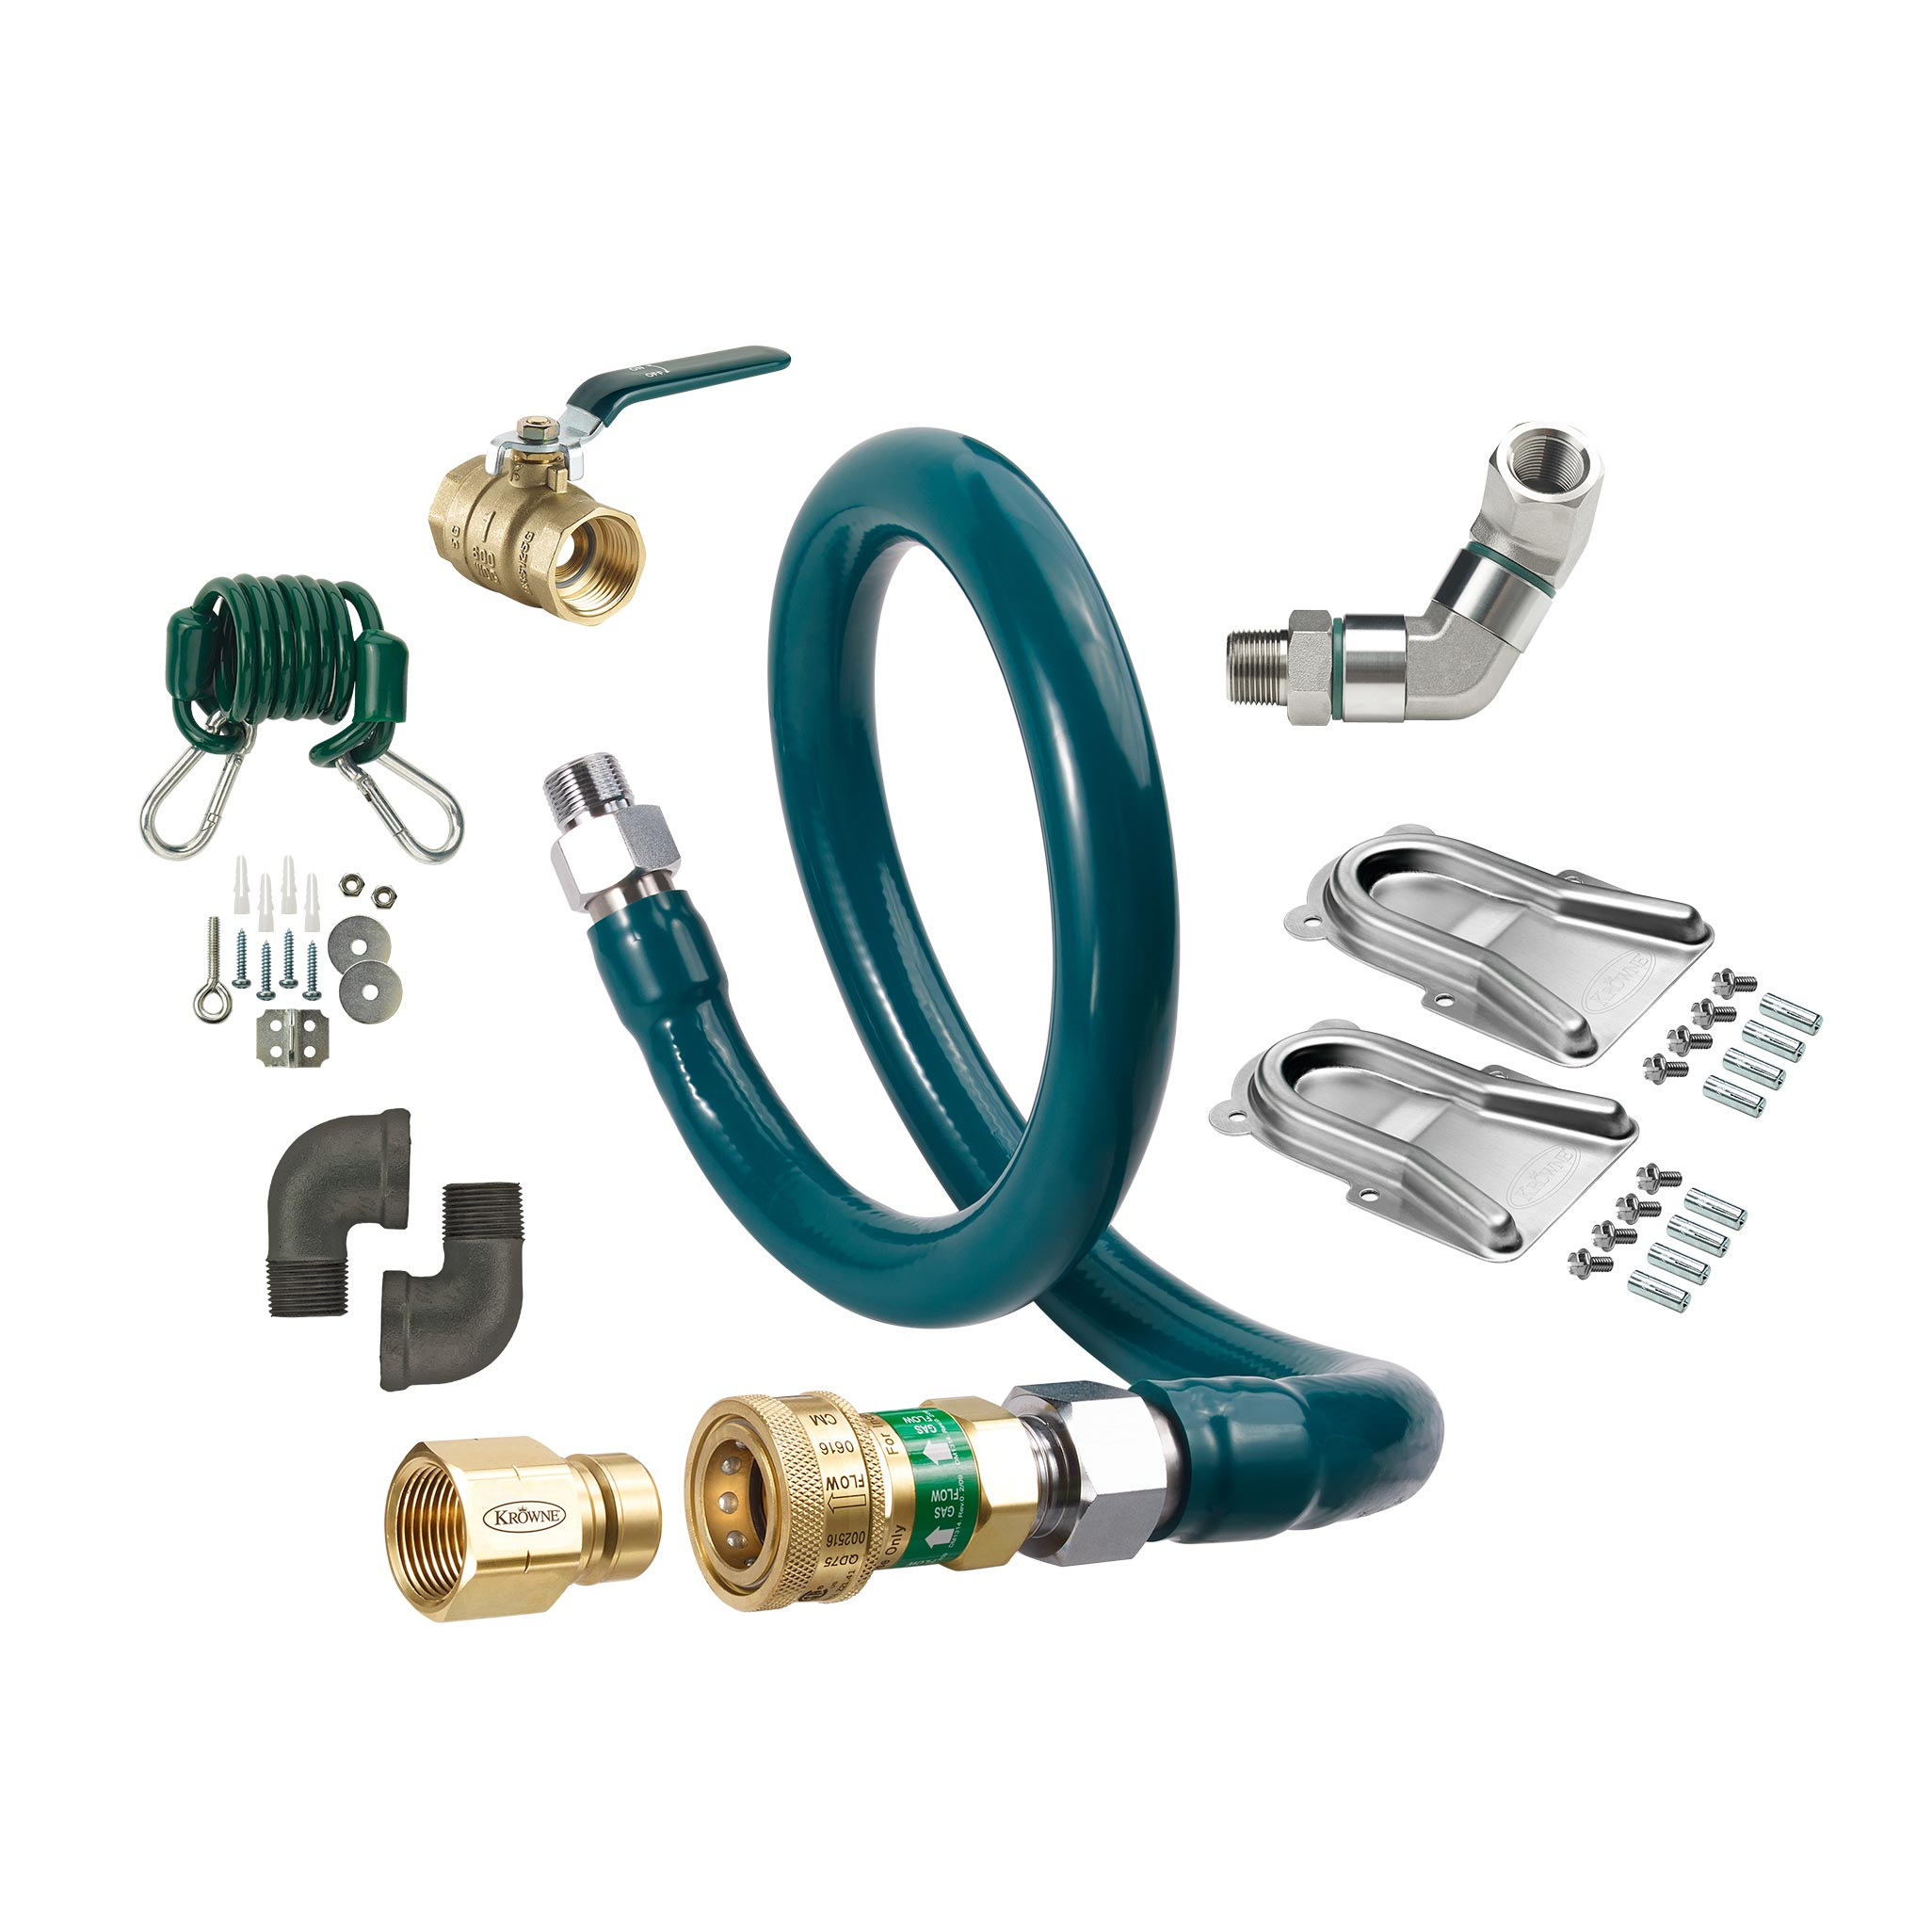 Krowne Metal M5024K11 gas connector hose kit